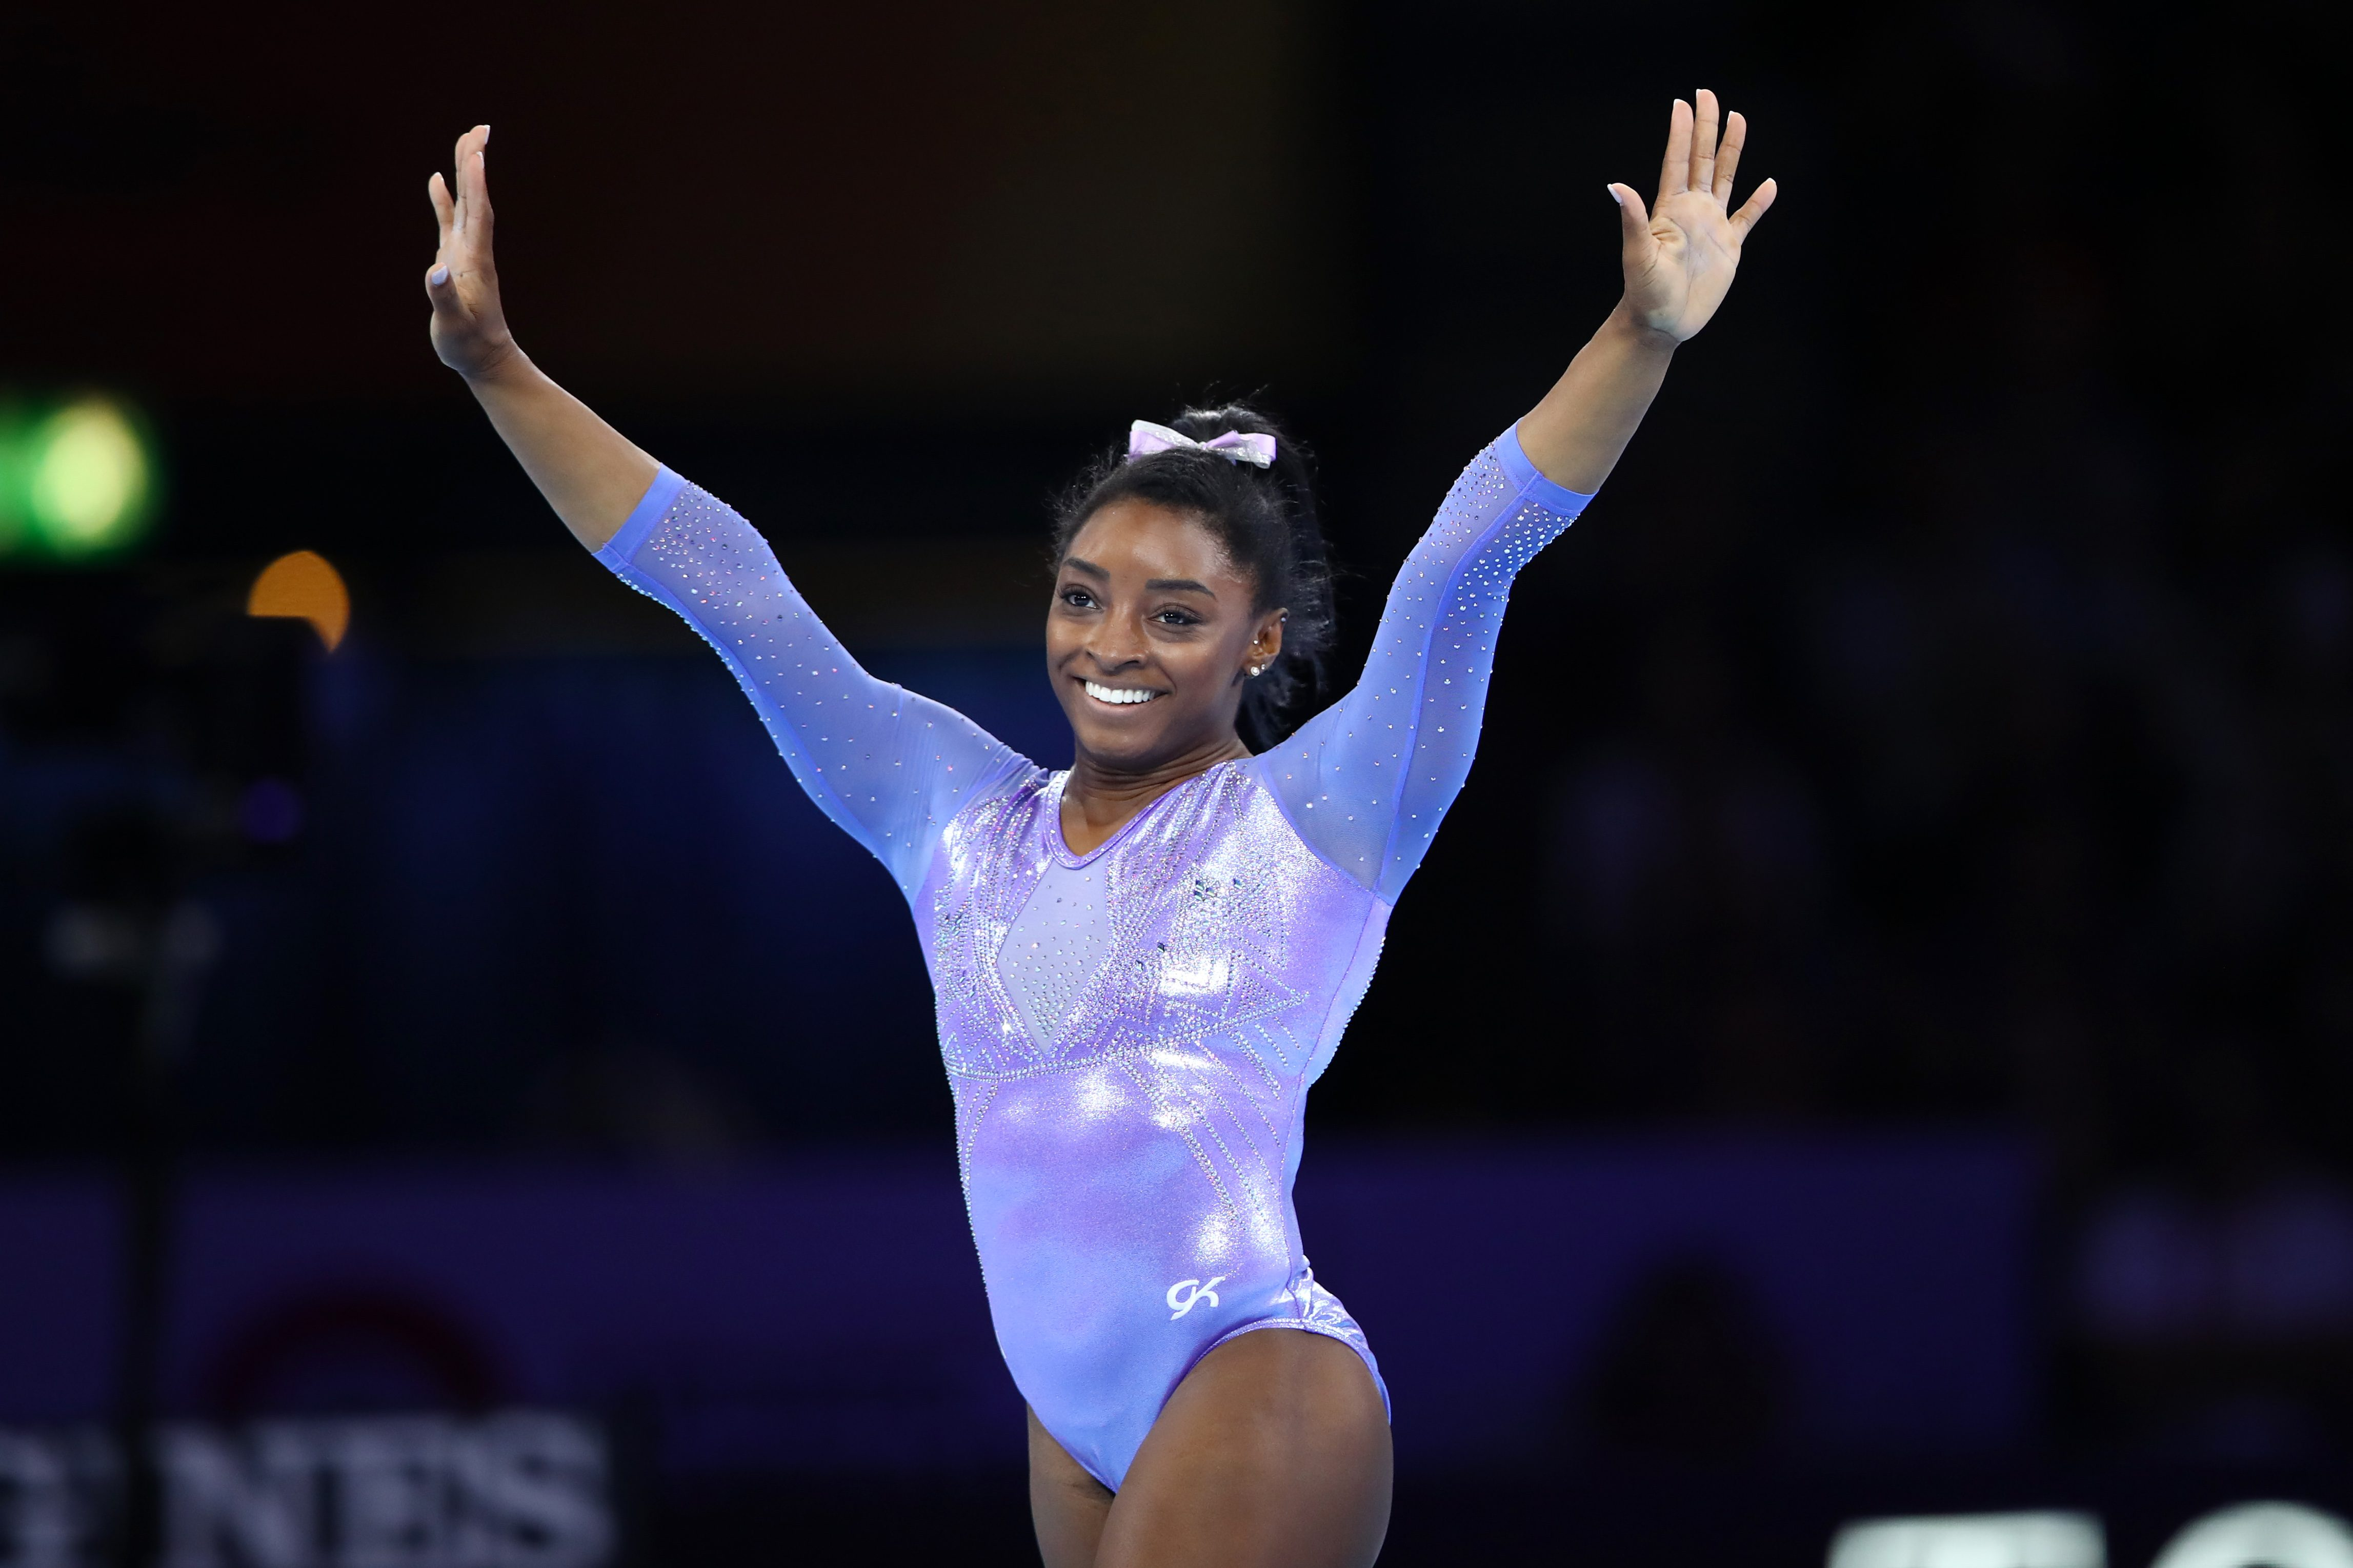 Mandatory Credit: Photo by Aflo/Shutterstock (10443602cx) Simone Biles (USA) - Artistic Gymnastics : The 2019 Artistic Gymnastics World Championships, Women's Apparatus Finals Floor Exercise at Hanns-Martin-Schleyer-Halle in Stuttgart, Germany. Gymnastics World Championships, Day 10, Stuttgart, Germany - 13 Oct 2019